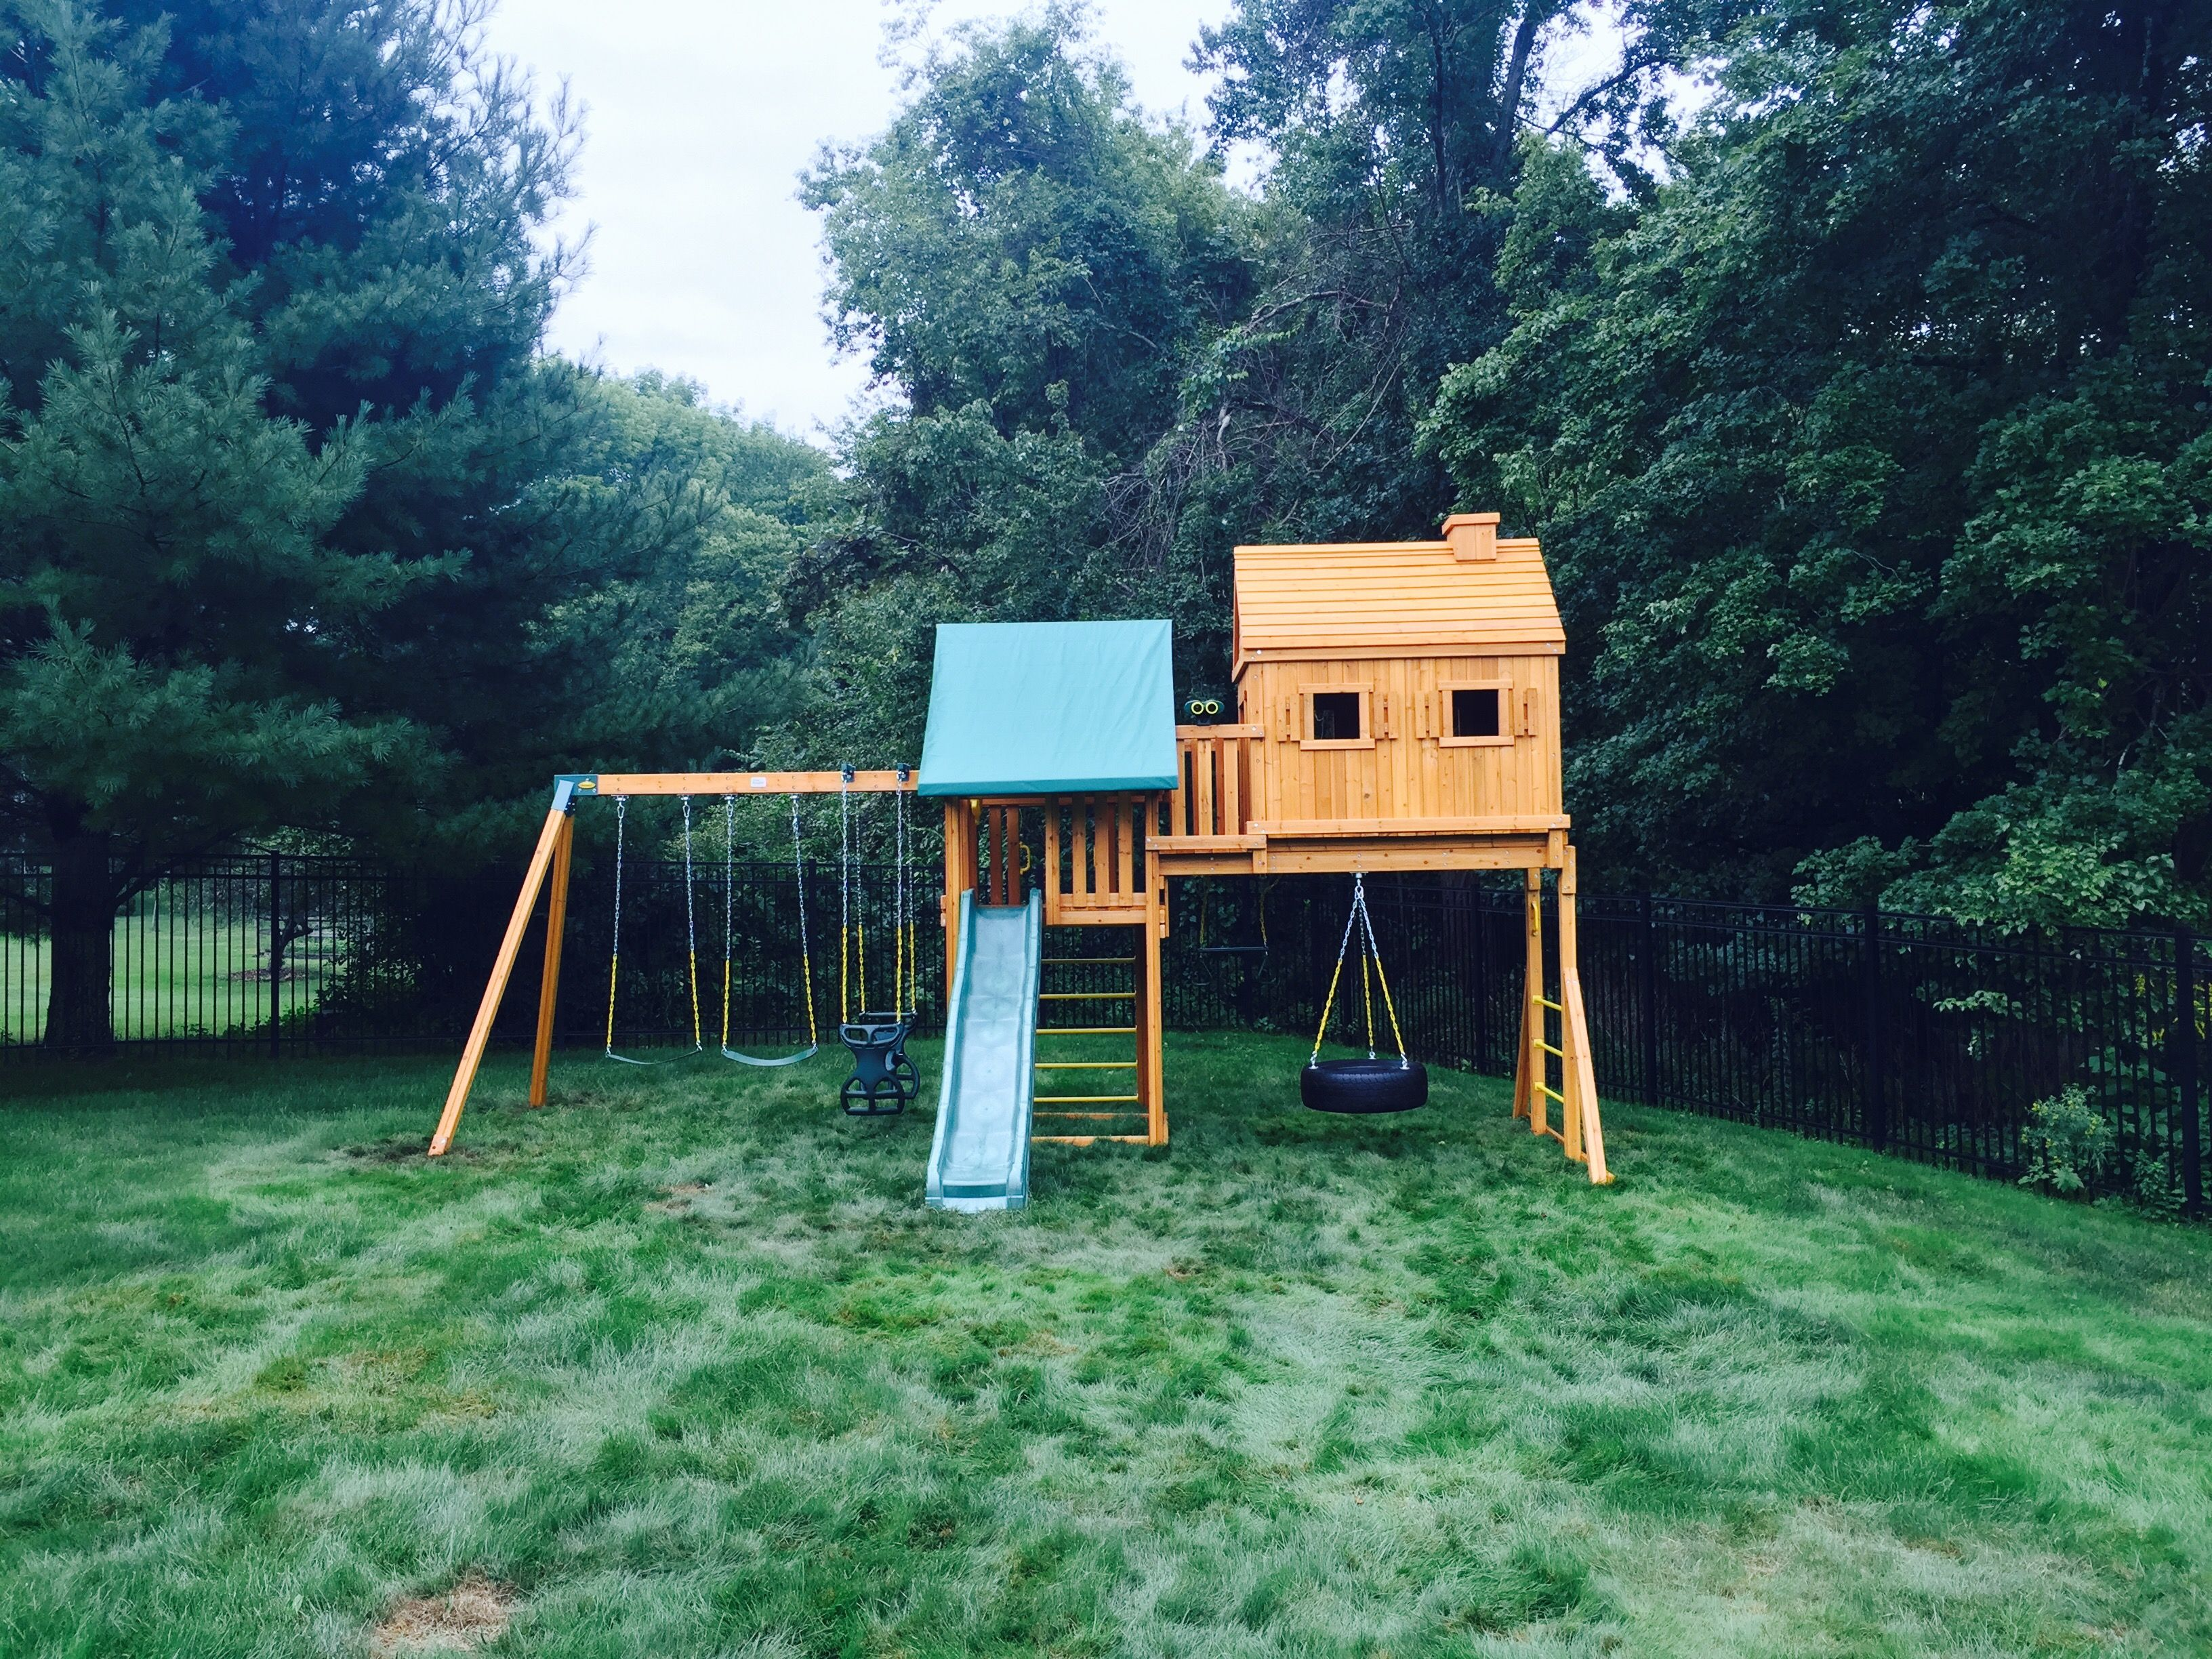 here u0027s the fantasy tree house swing set from eastern jungle gym